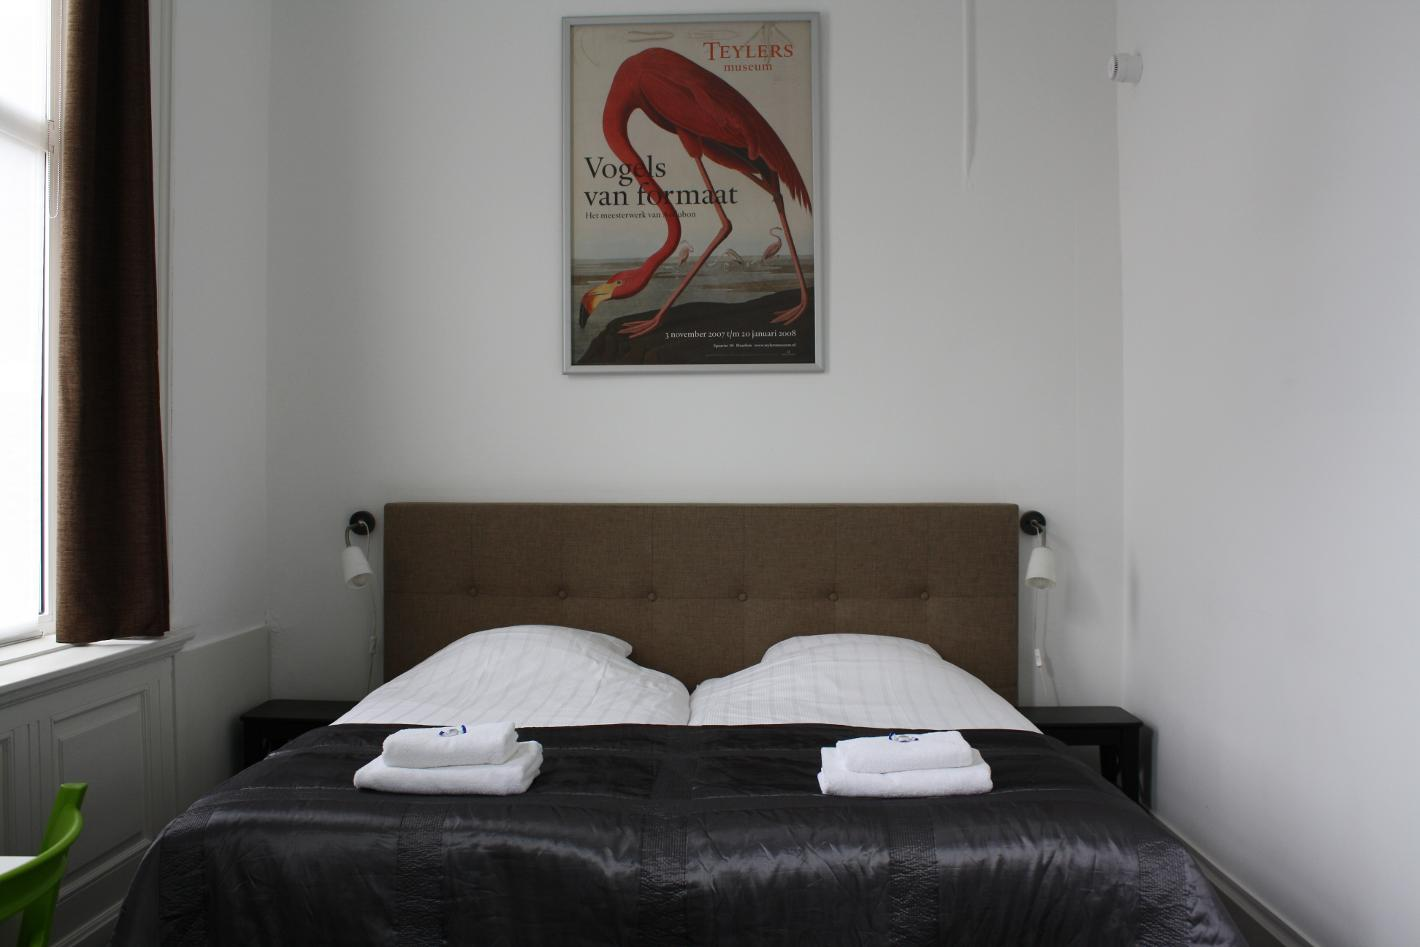 Foto B&B Hotel Malts in Haarlem, Slapen, Bed & breakfast - #3